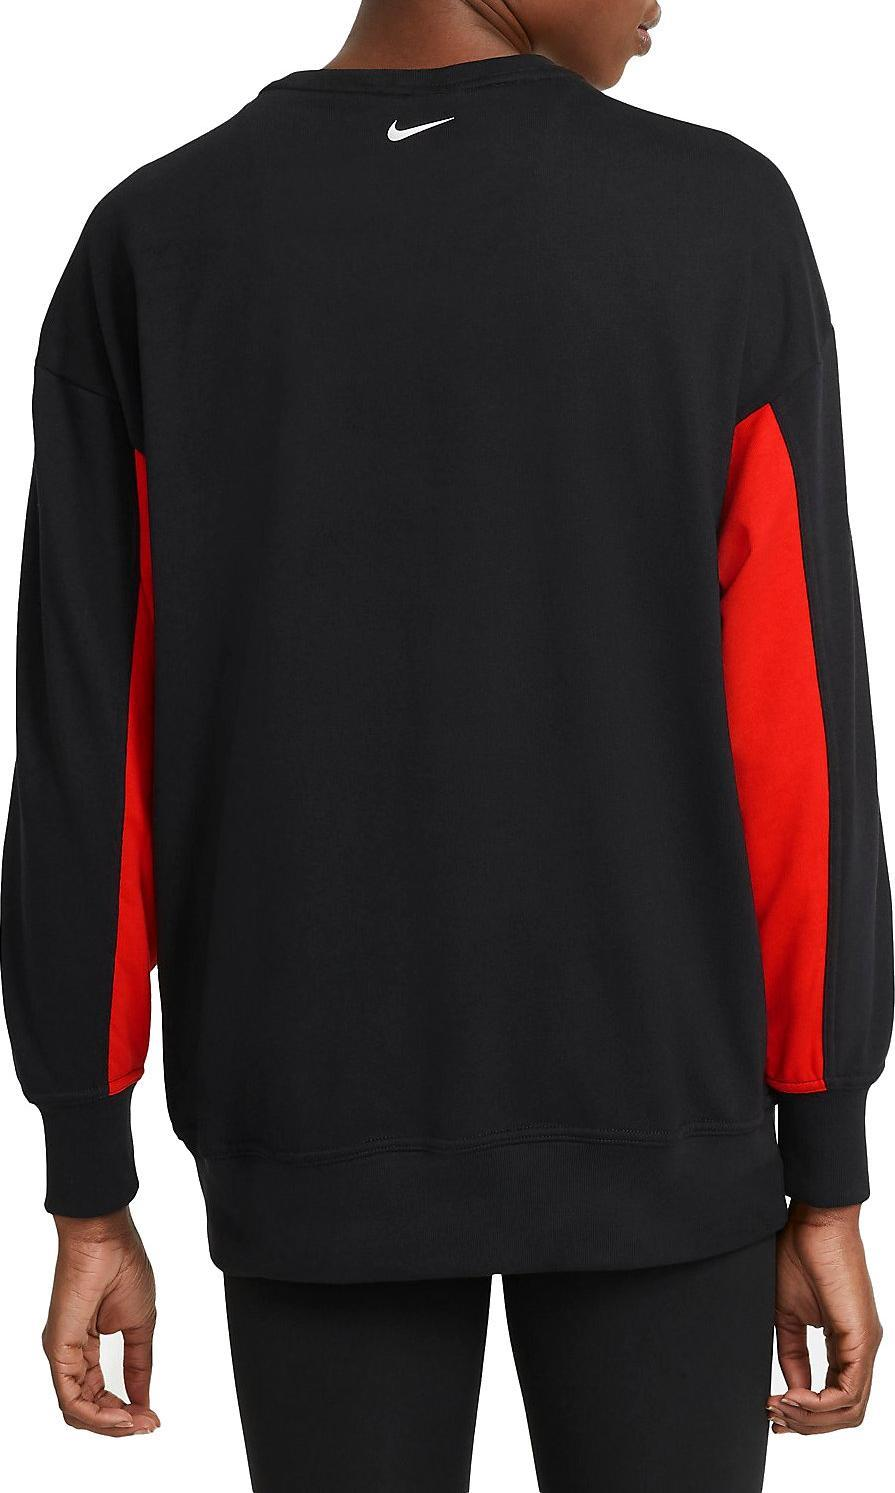 Nike Women's Dri-Fit Get Fit Sweatshirt - Black/Chile Red/White SP-ApparelFleece-Womens Nike